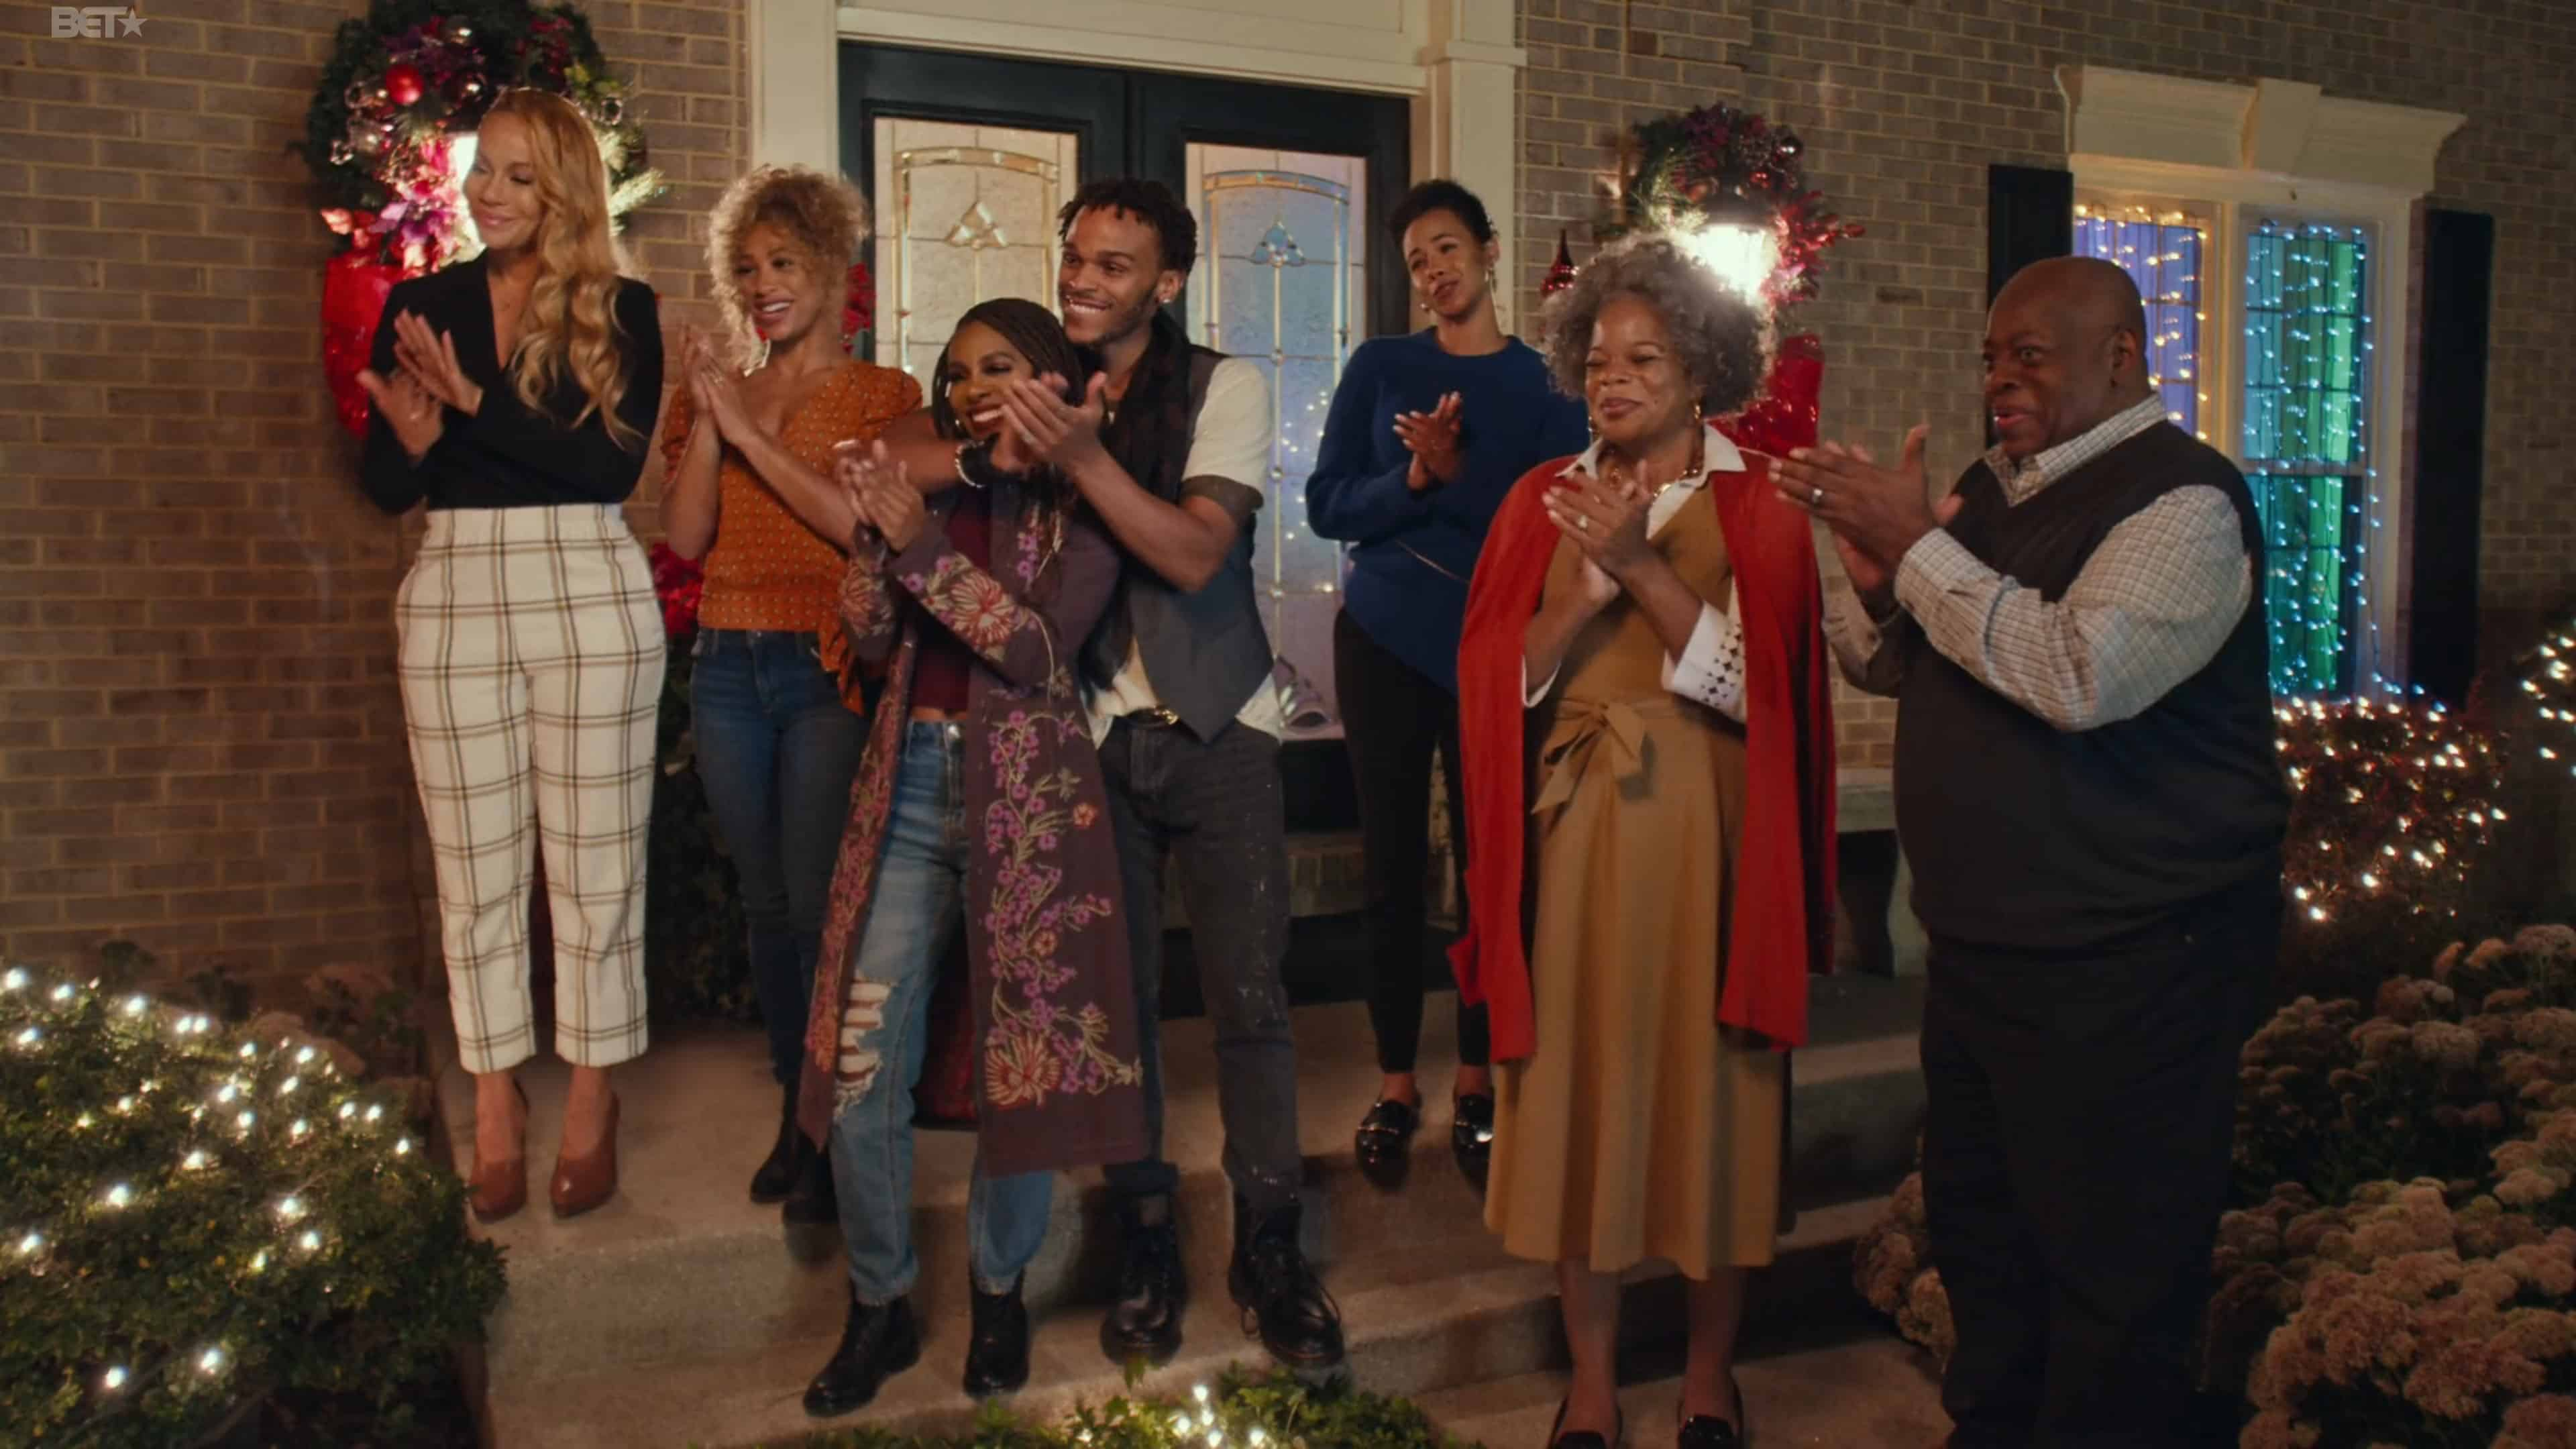 Nicole (Brave Williams), Diedre (Asia'h Epperson), Tammy (Candiace Bassett), Spyder (Terayle), Belinda (Phylicia Morgan), Diane (Kay-Megan Washington), and Gerald (Reginald VelJohnson) clapping for carolers